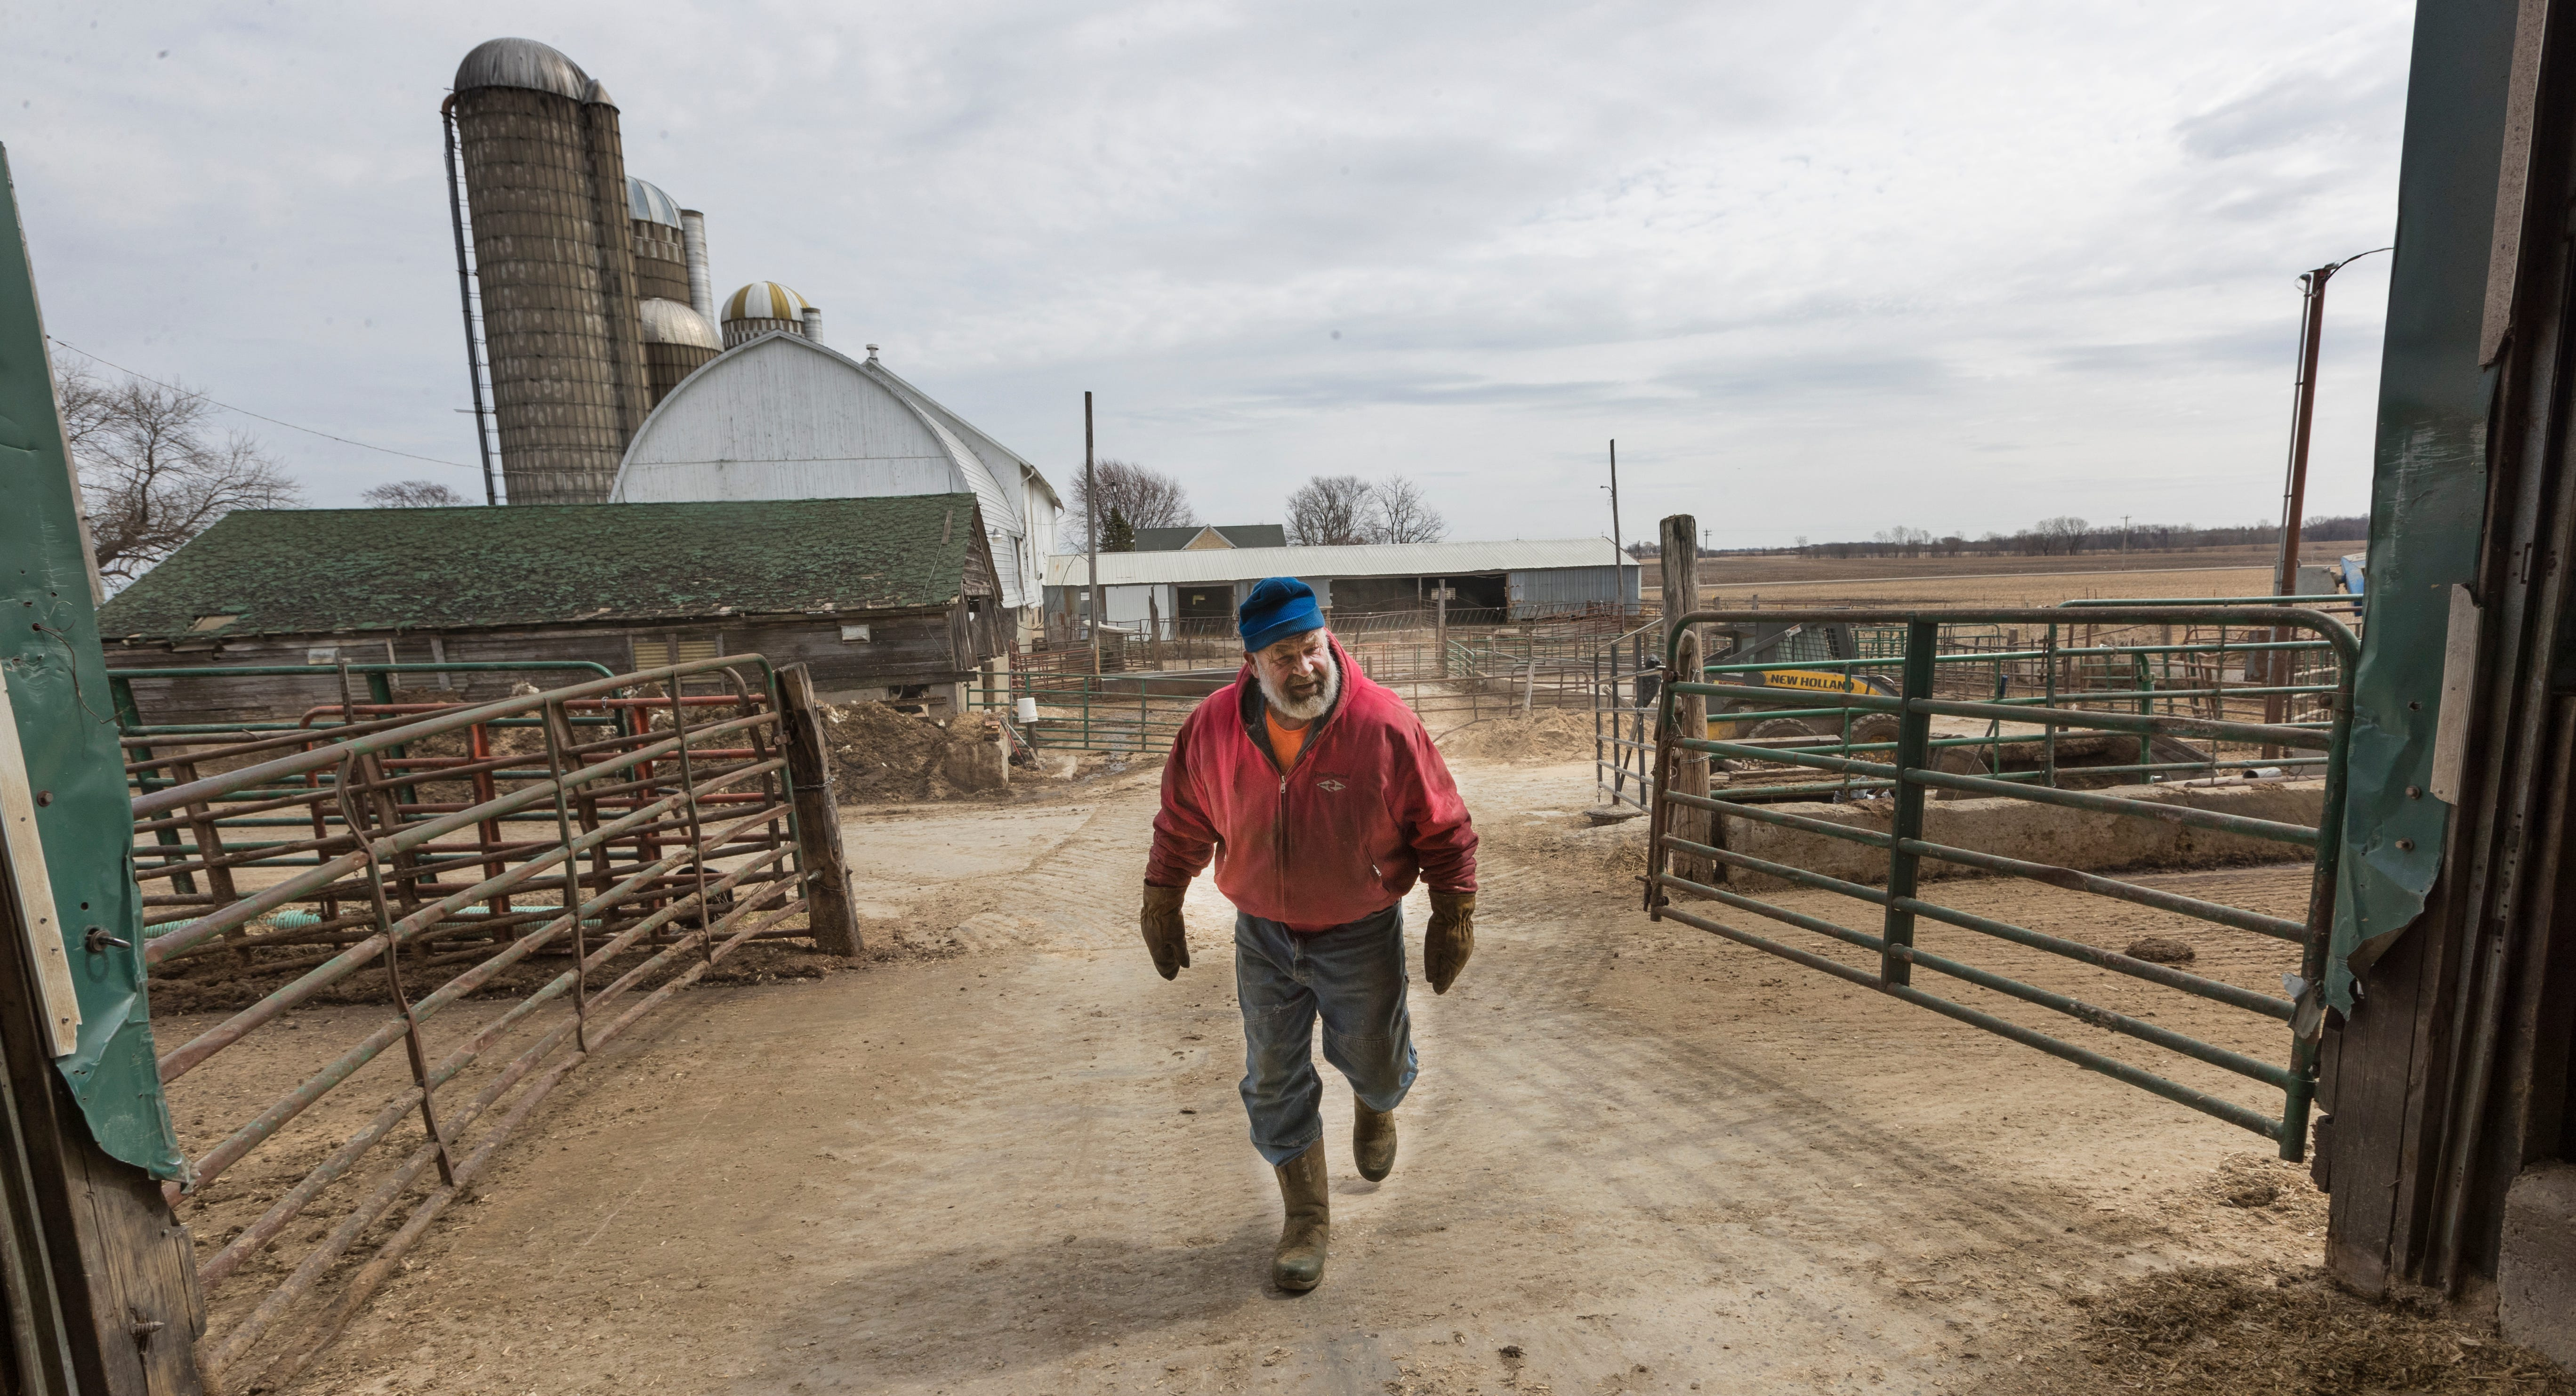 Clem Mess bought Mesa Farms in 1971 after returning from the Vietnam War. Last year, the farm only had about $19,000 in net income.